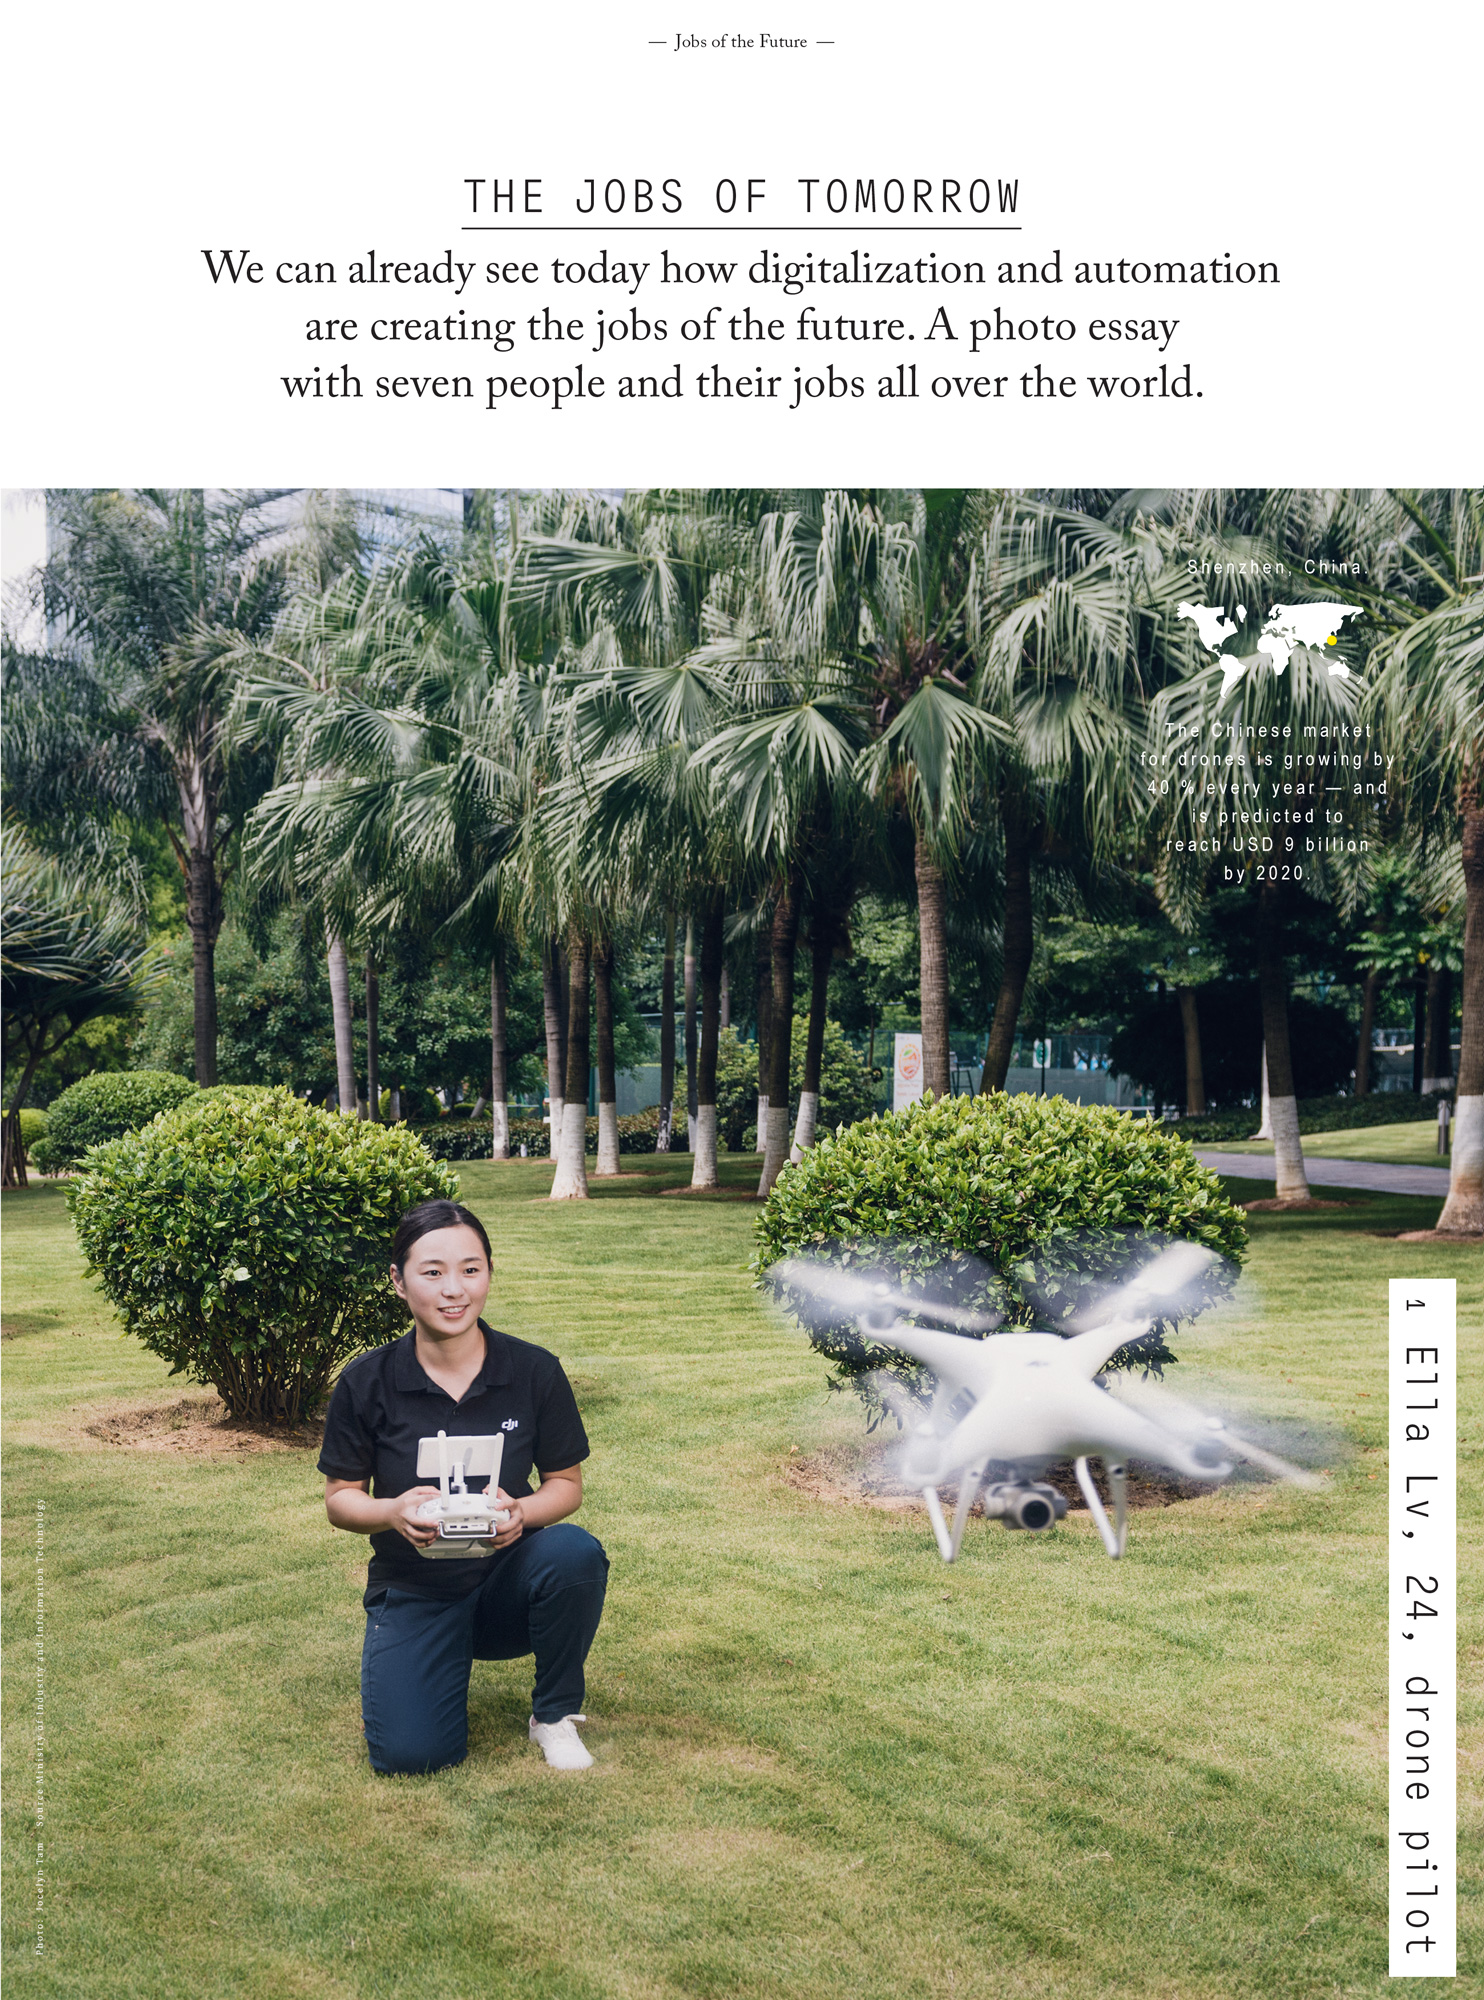 Ella Lv, Drone Pilot , Source Ministry of Industry and Information Technology.